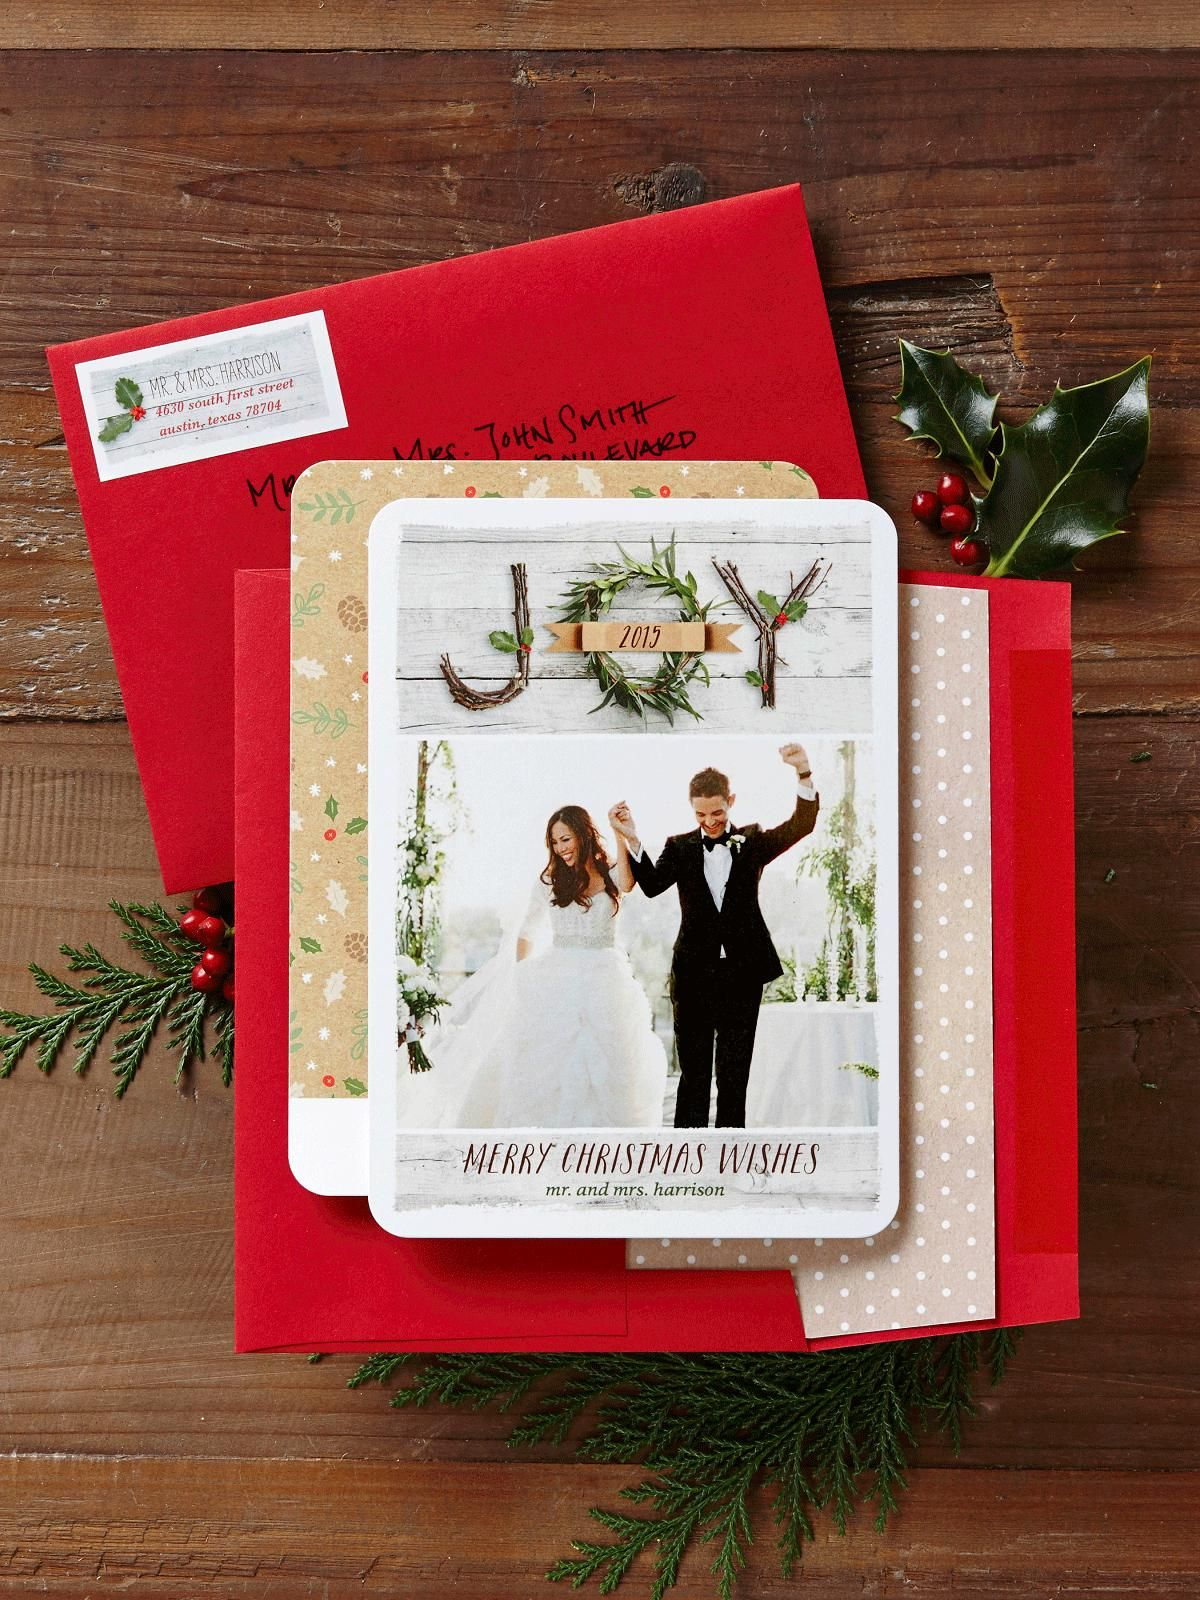 Just married? Send your Christmas card as newlyweds. Personalize a ...